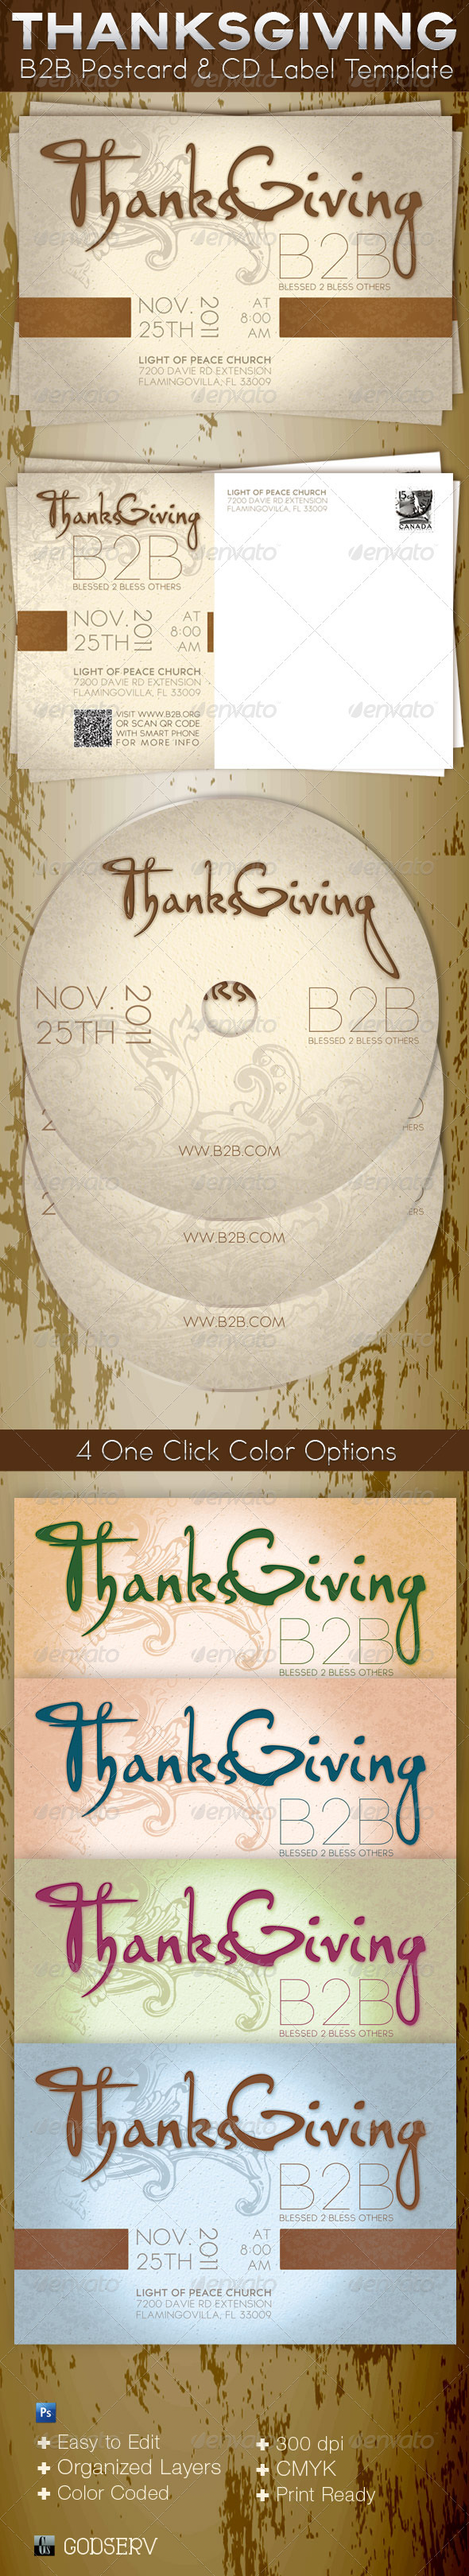 GraphicRiver Thanksgiving B2B Postcard and CD Label Template 840603